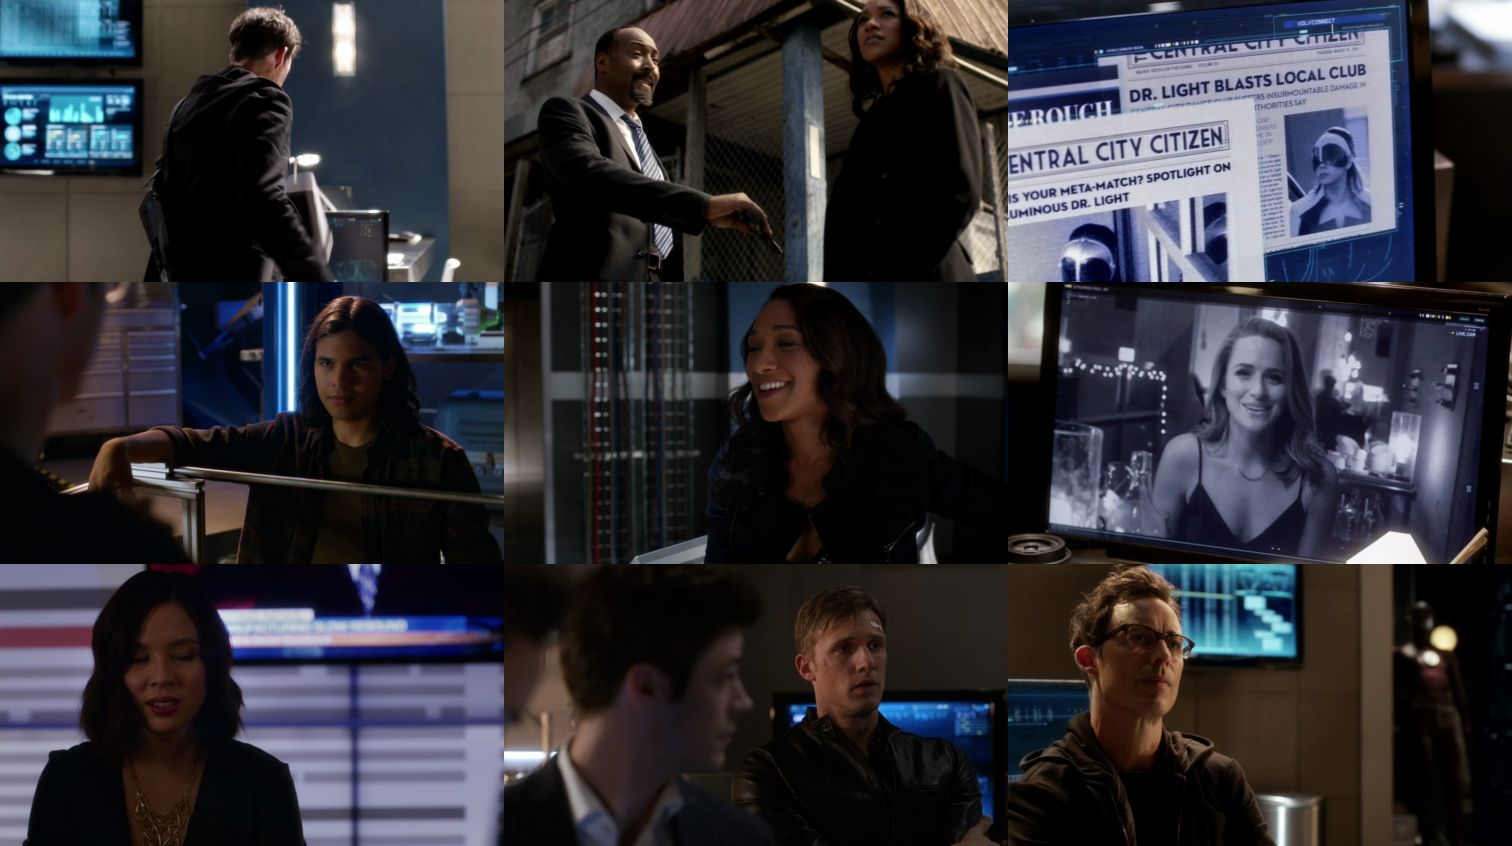 The Flash 2014 S02E05 HDTV x264-LOL